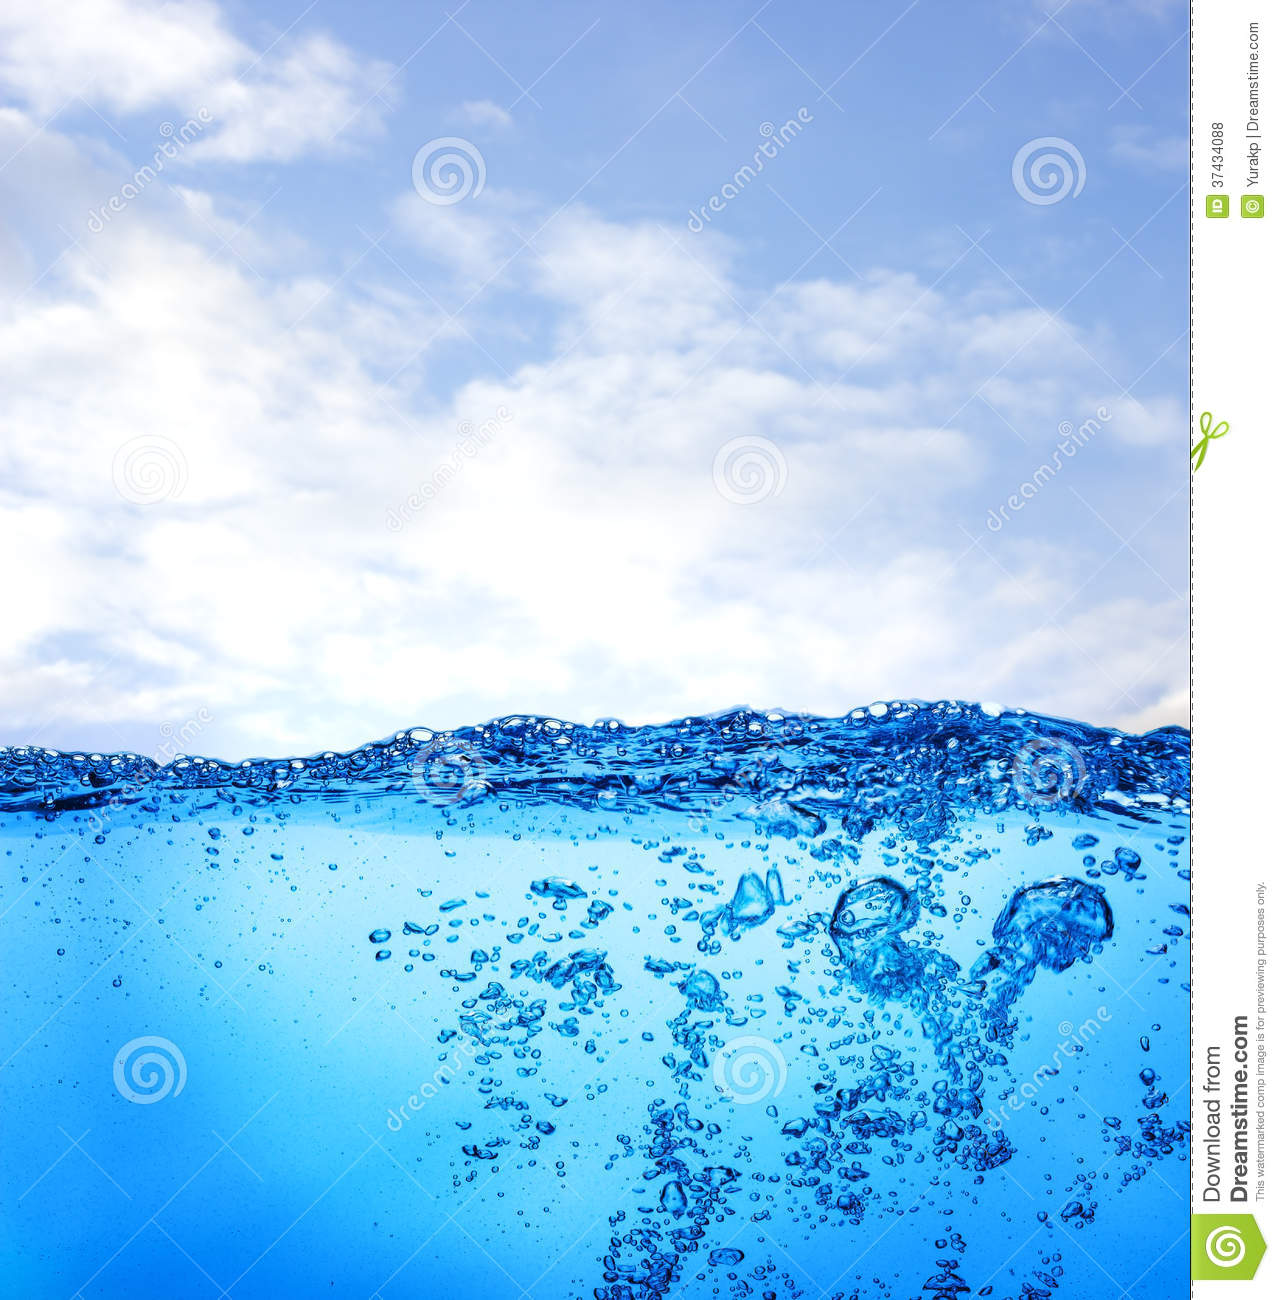 Water And Air Bubbles Over Sky Background Royalty Free ...